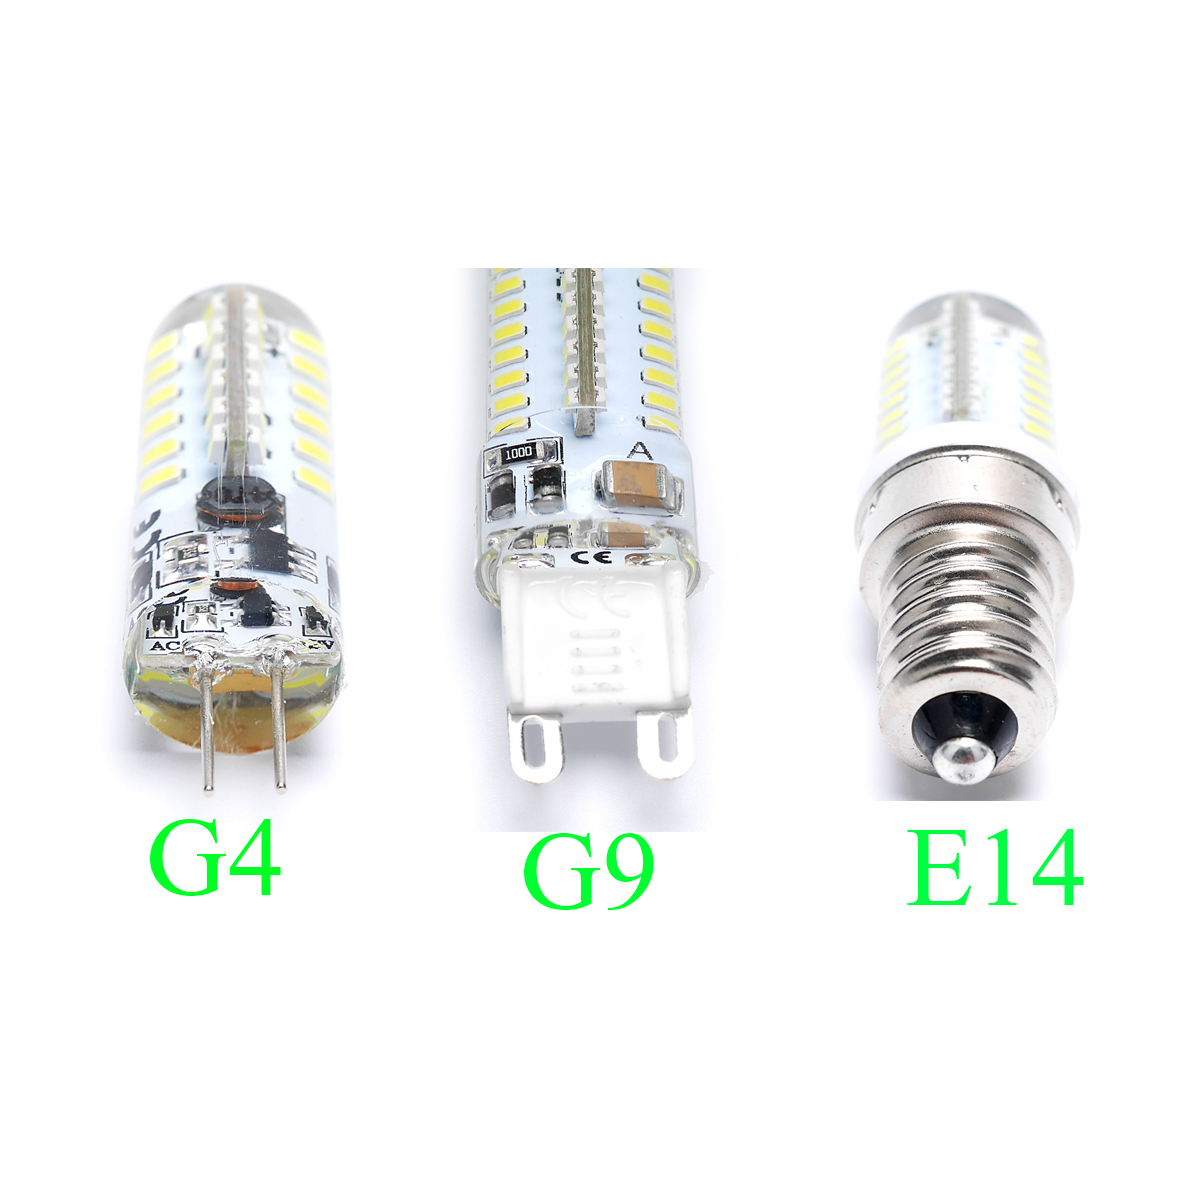 Halogen E14 Wow G4 G9 E14 Led Capsule Bulbs Replace Halogen Lamp